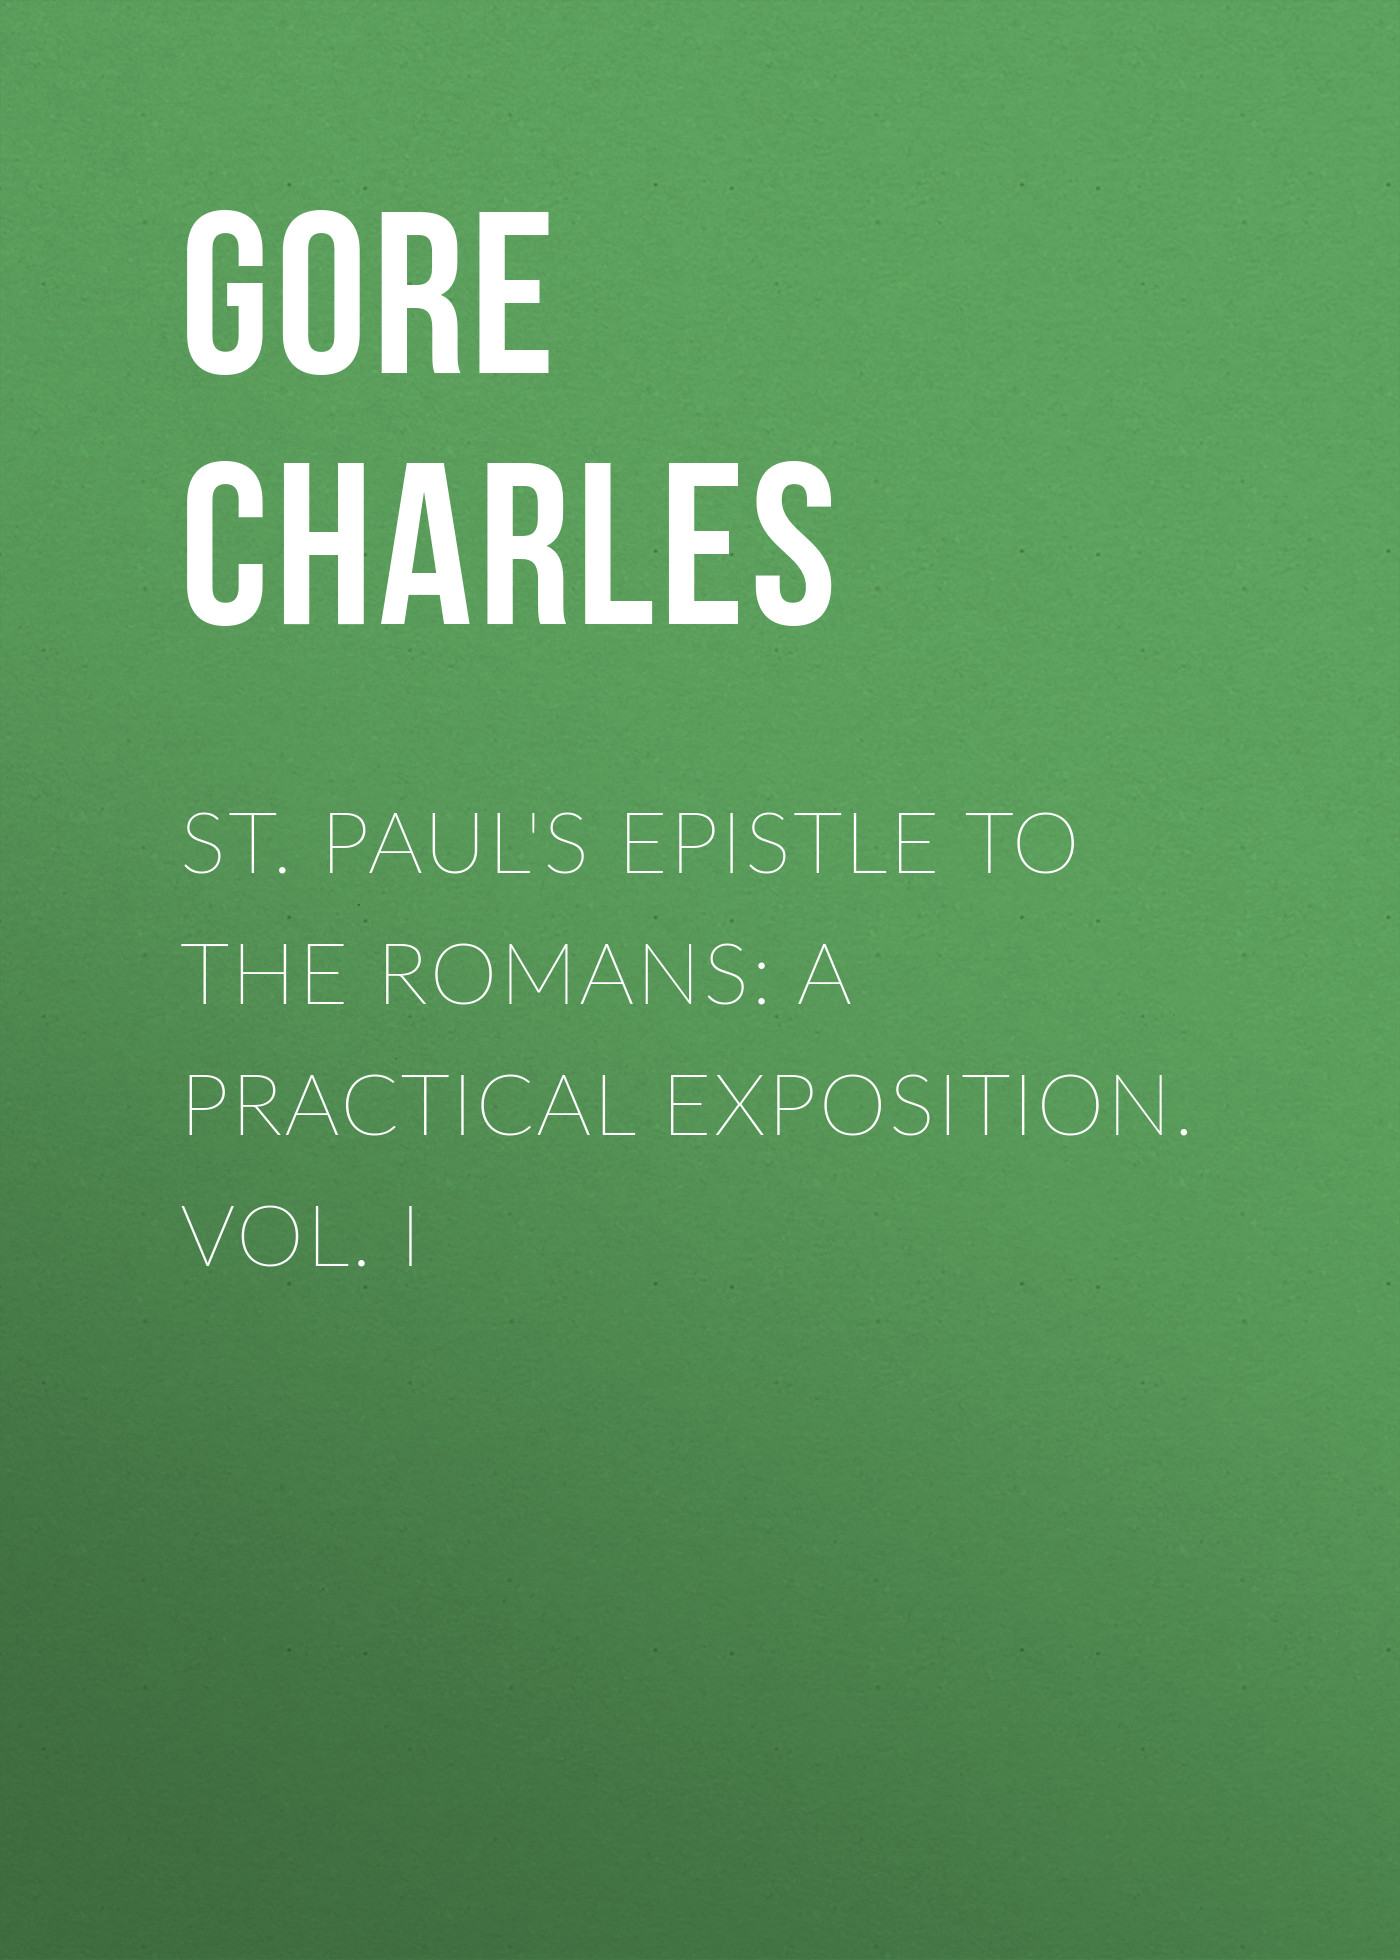 Gore Charles St. Paul's Epistle to the Romans: A Practical Exposition. Vol. I edwards thomas charles the expositor s bible the epistle to the hebrews